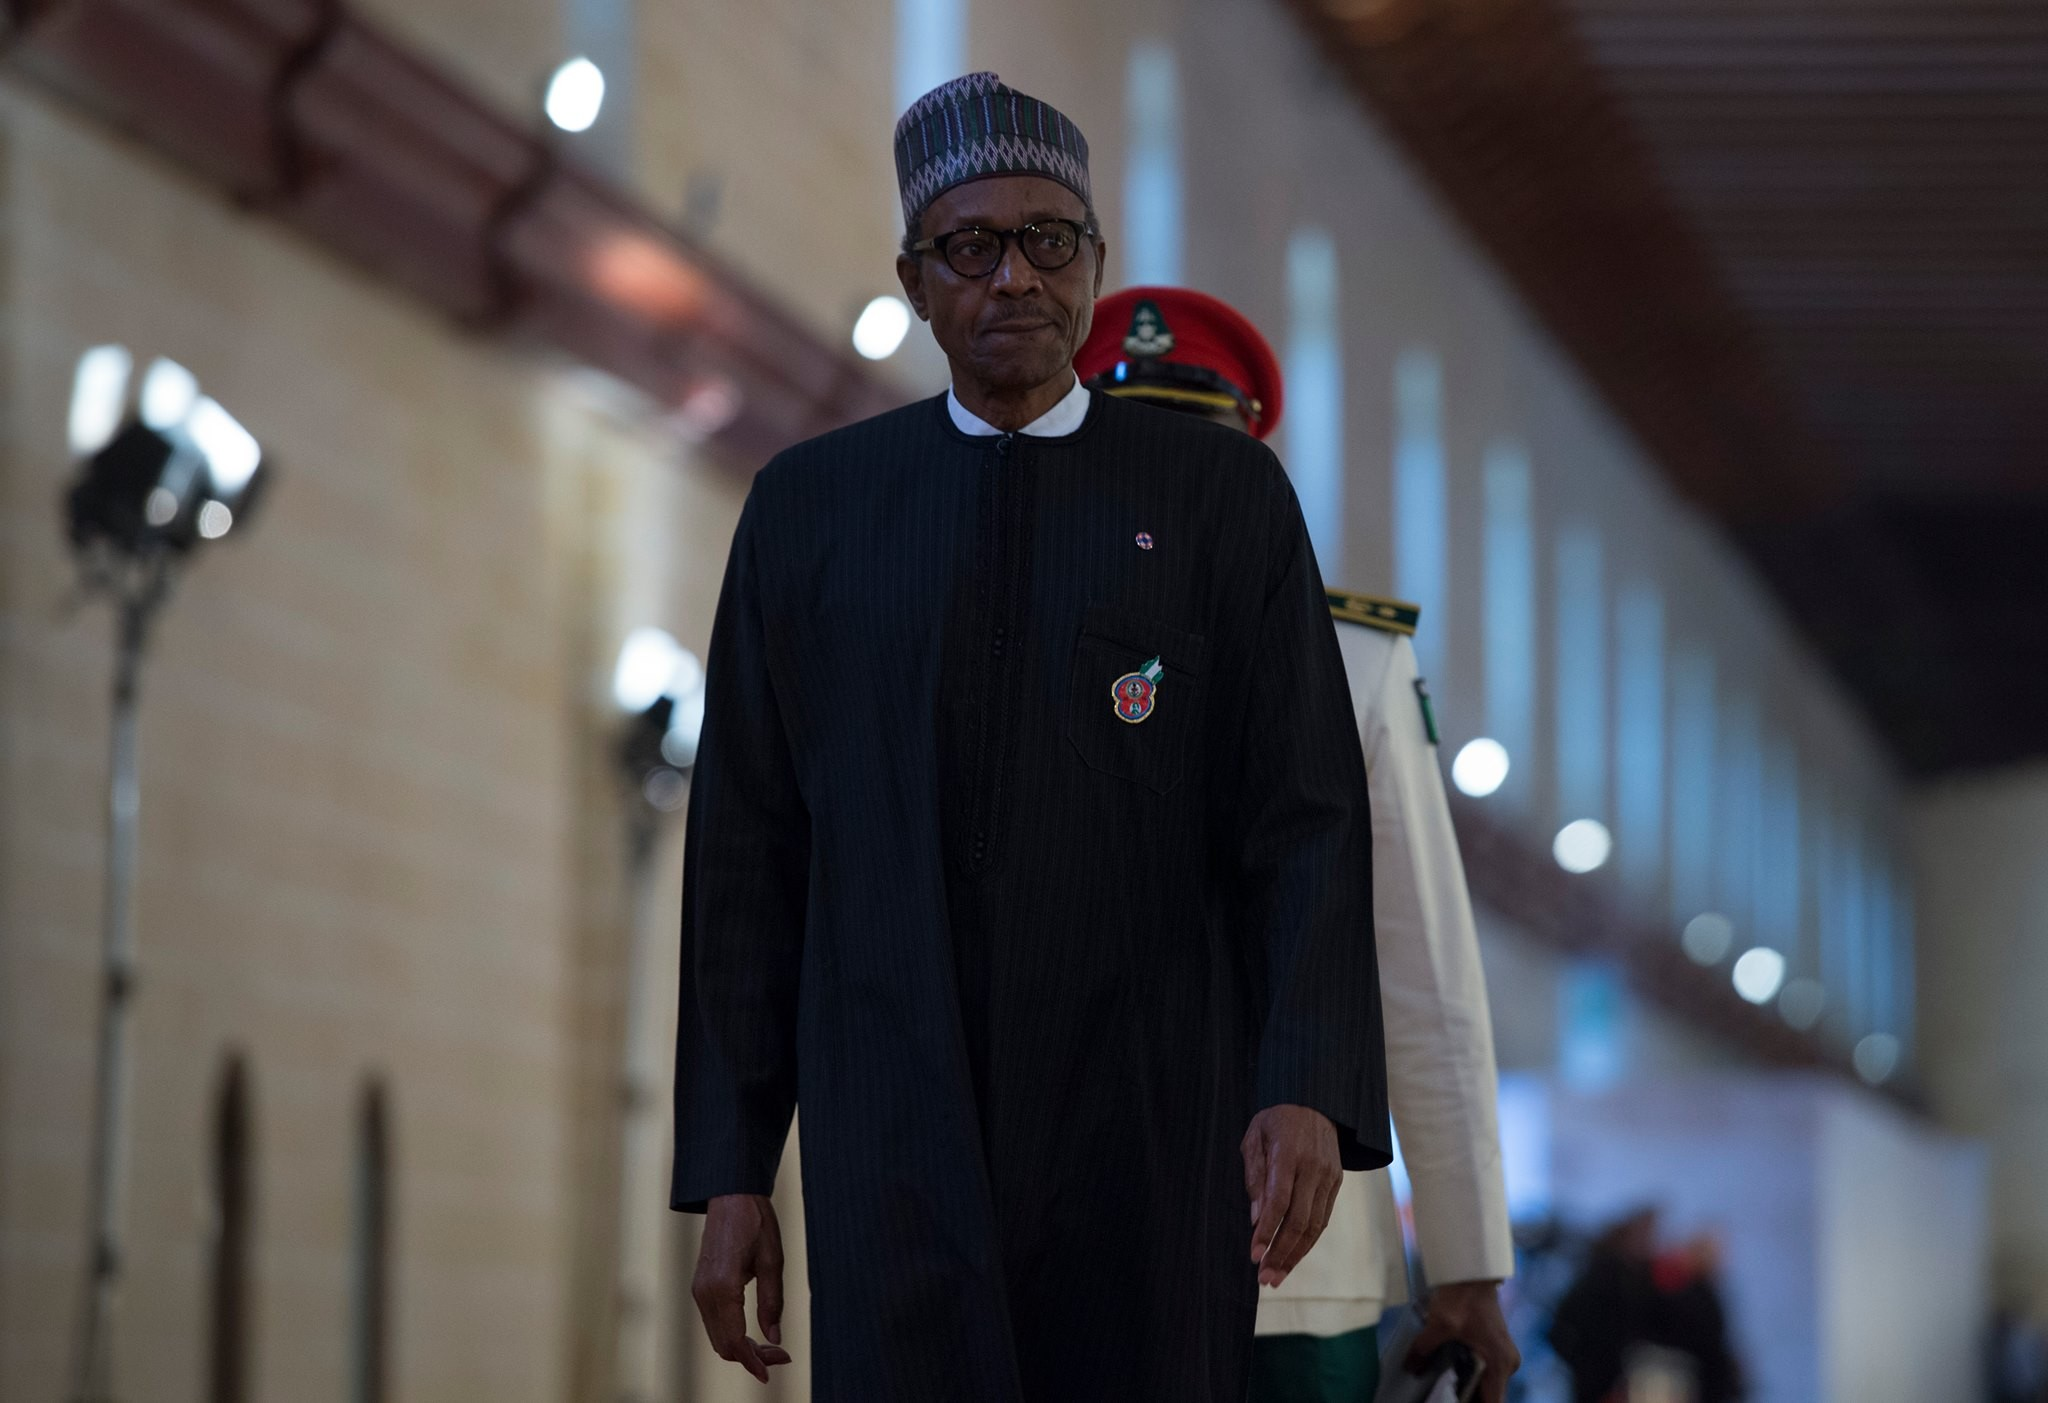 President Buhari currently in the UK, presidency says ?It?s a technical stopover?